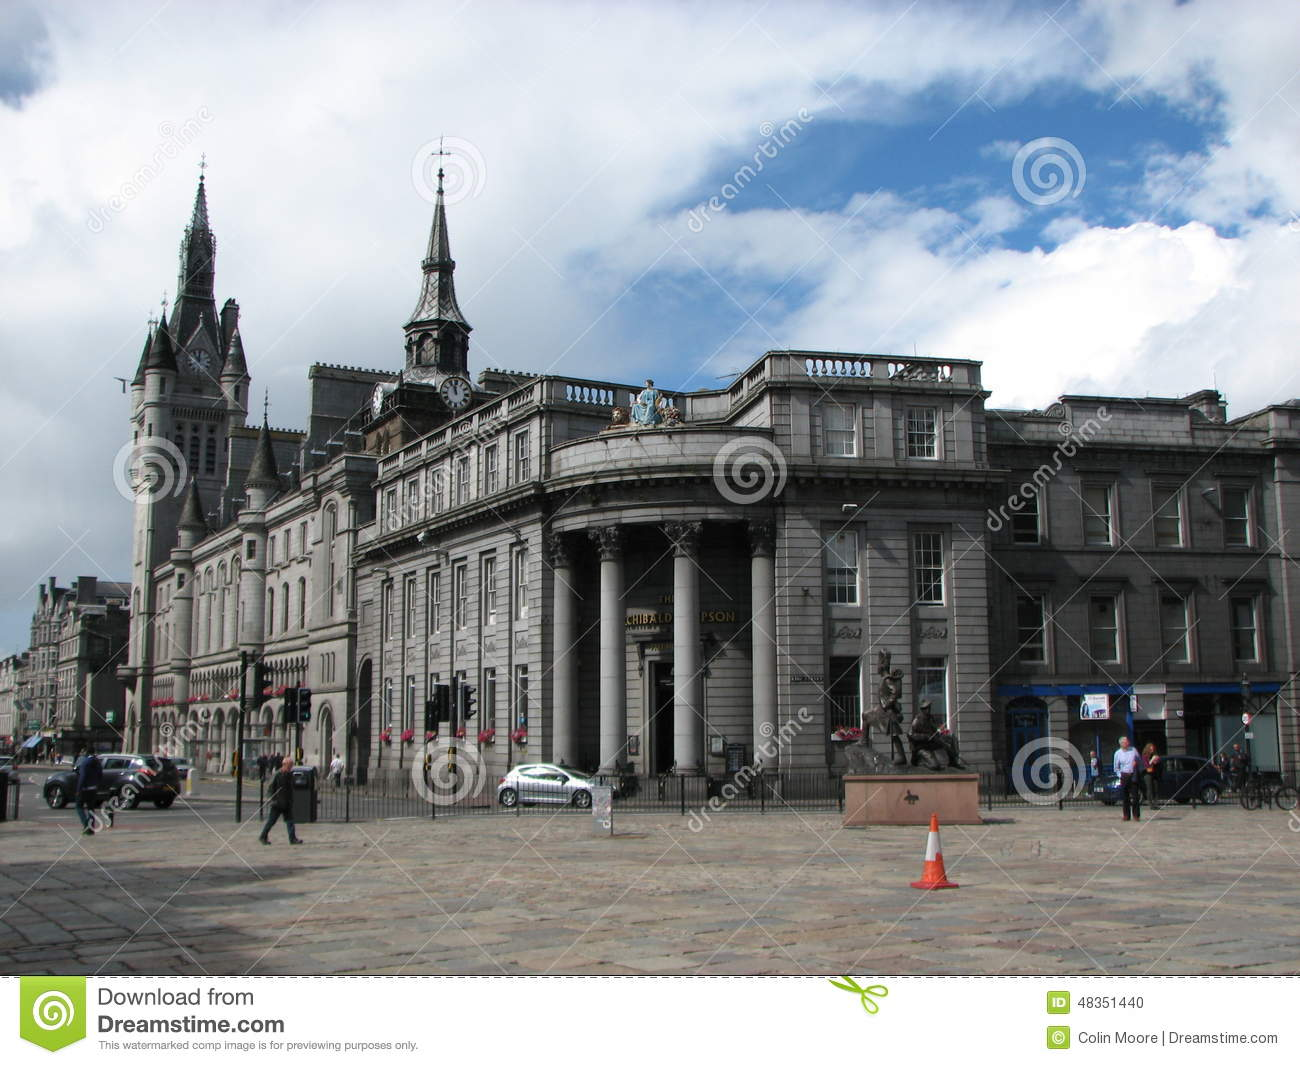 Current local time in Aberdeen - check correct time in Aberdeen, Scotland, United Kingdom, summer/winter time, standard offset to GMT and time conversion dates for daylight savings time